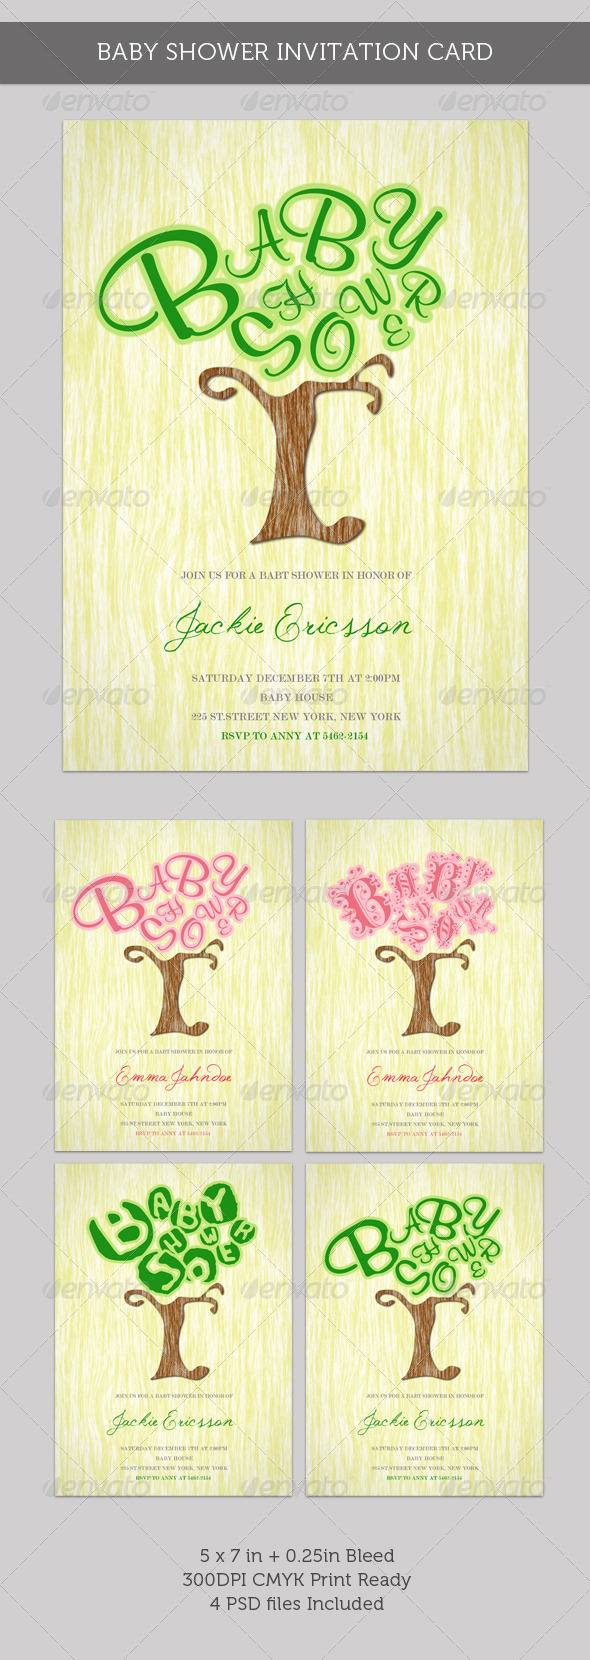 Graphic River Baby Shower Invitation Card Growing Tree Print Templates -  Cards & Invites  Family 336695